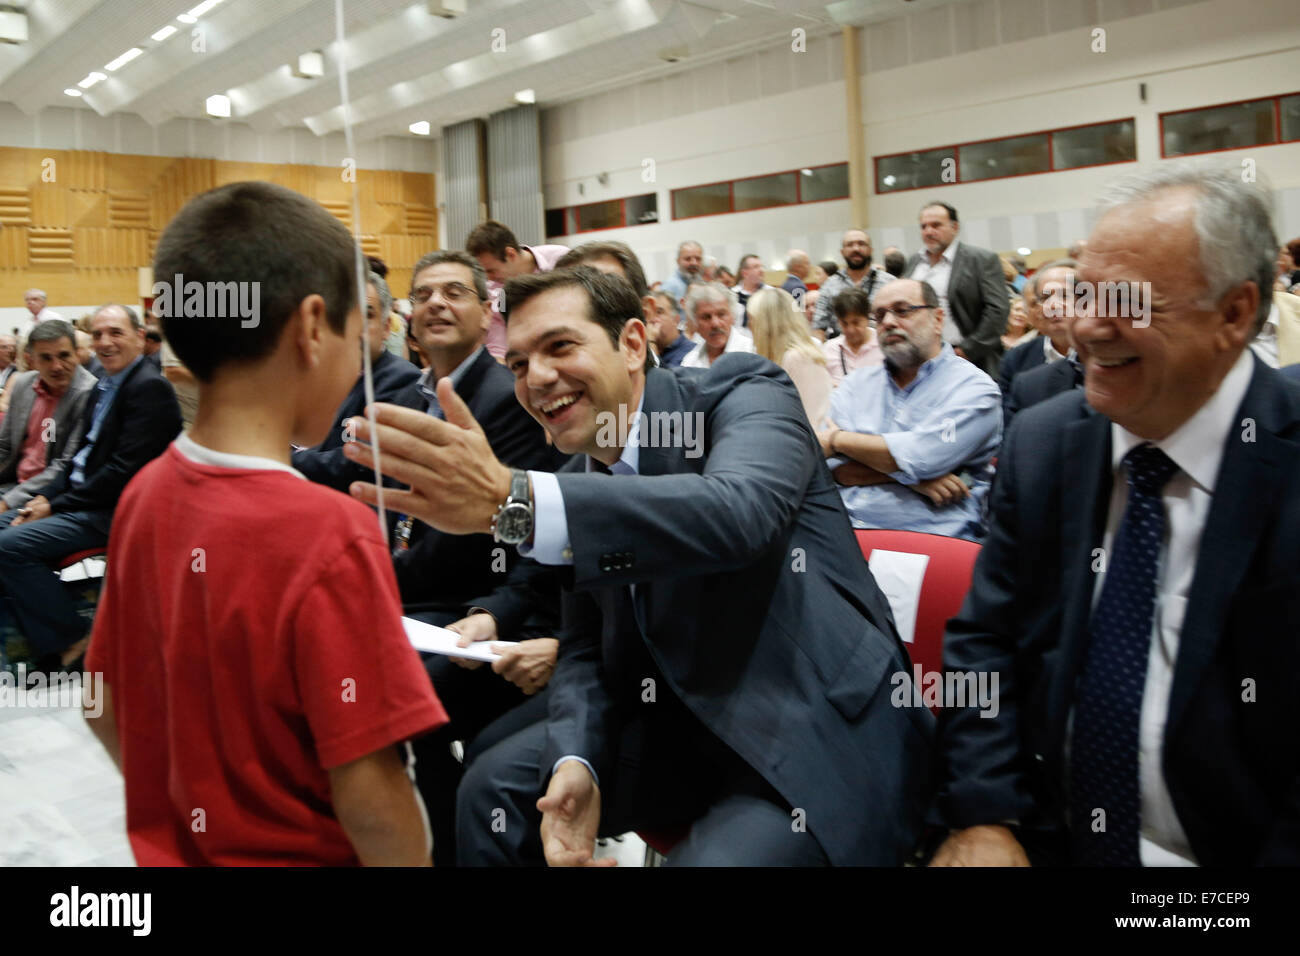 Thessaloniki, Greece. 13th Sep, 2014. Leader of the Greek Opposition party SYRIZA Alexis Tsipras addresses productive - Stock Image